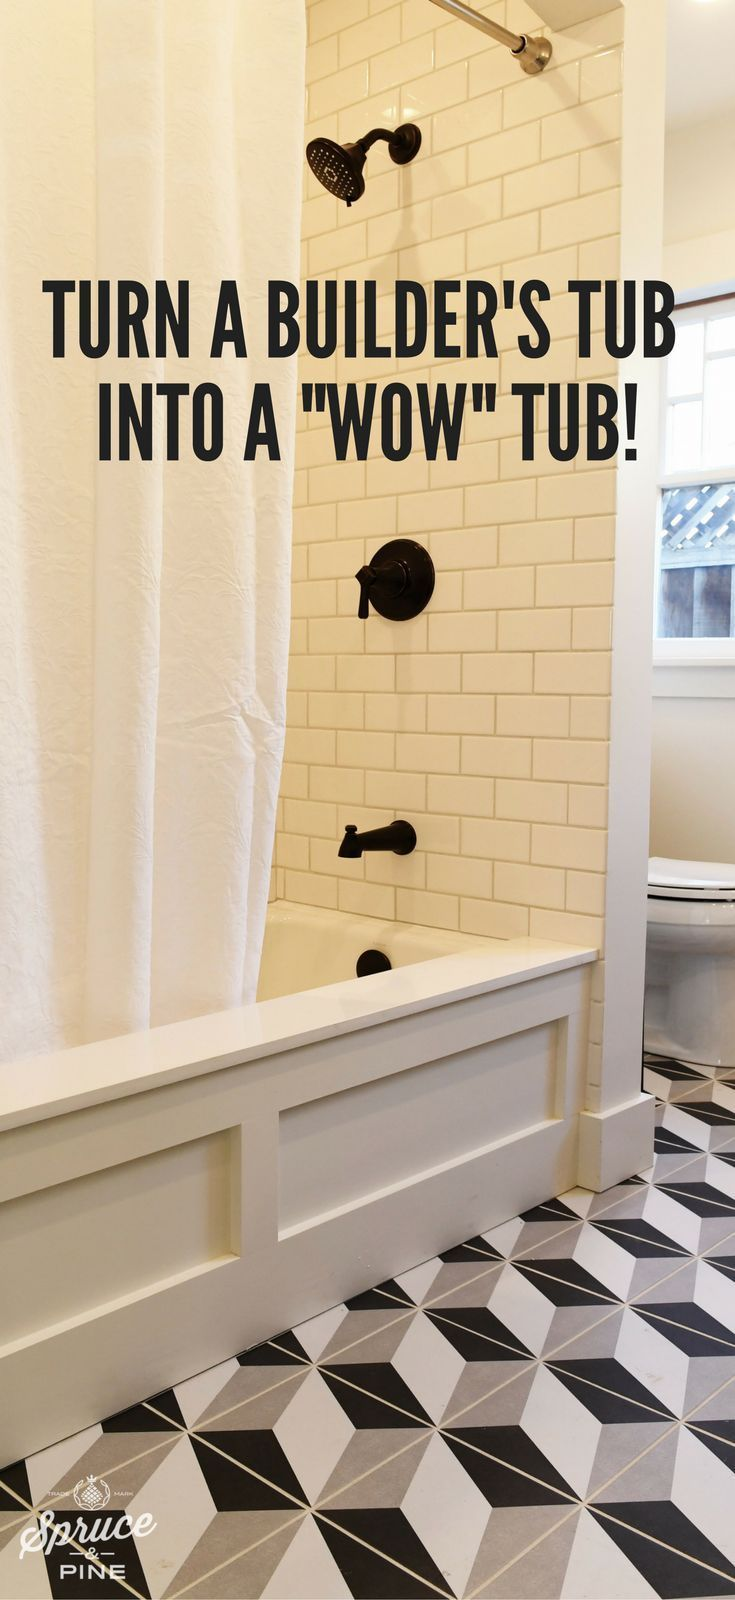 Our inexpensive tub trick | Pinterest | Bath tubs, Tubs and Flipping